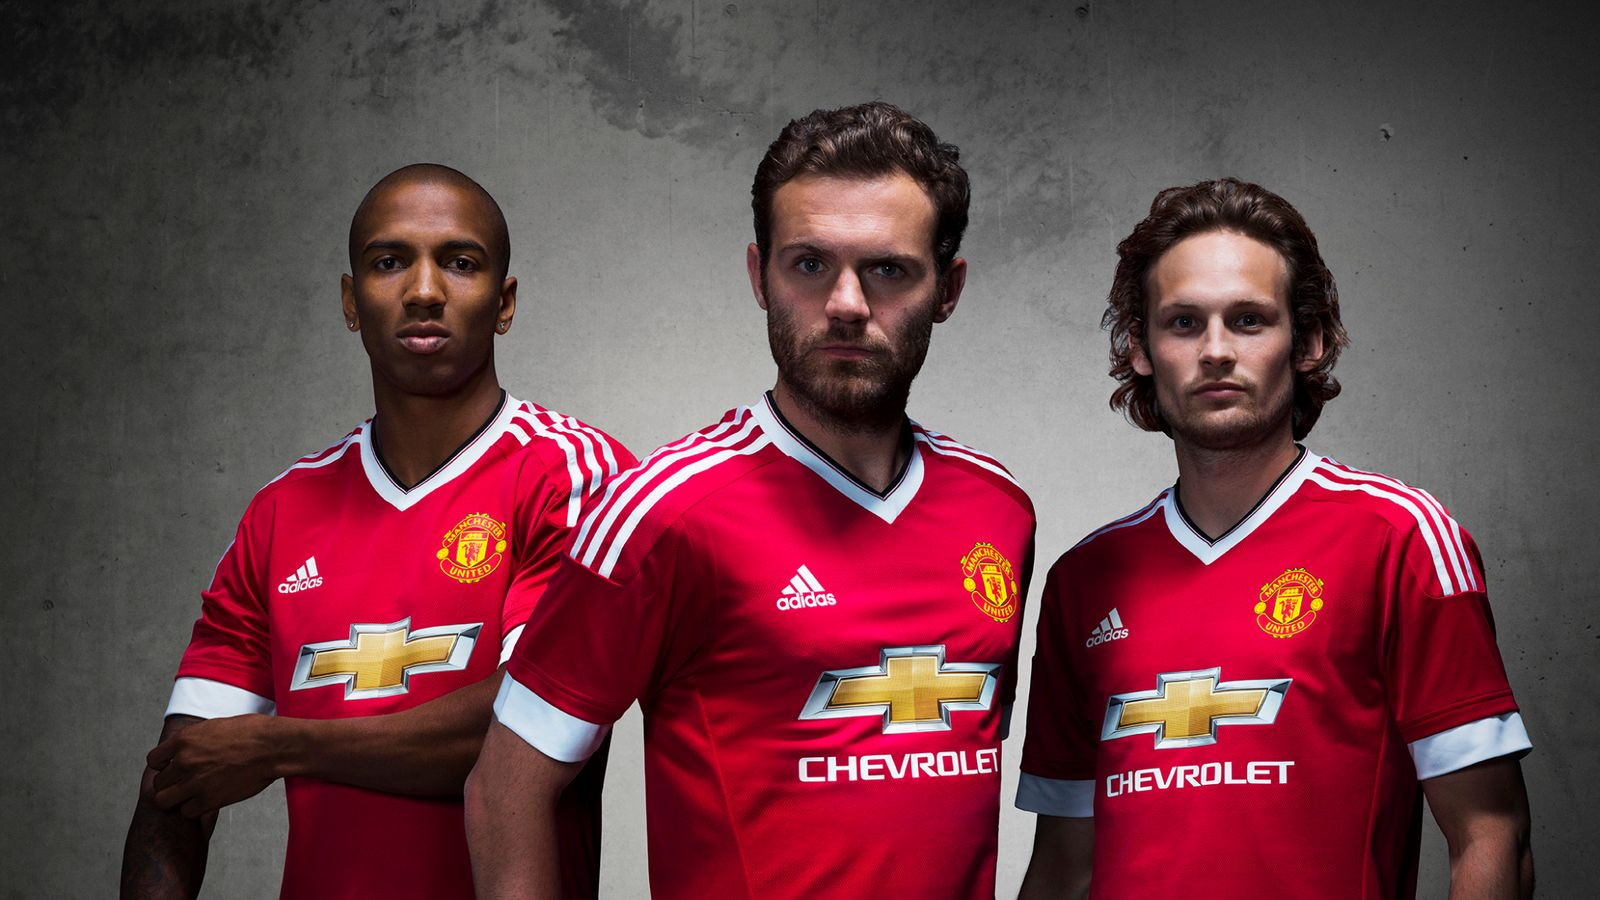 Manchester United unveil new adidas kit for 2015/16 season ...